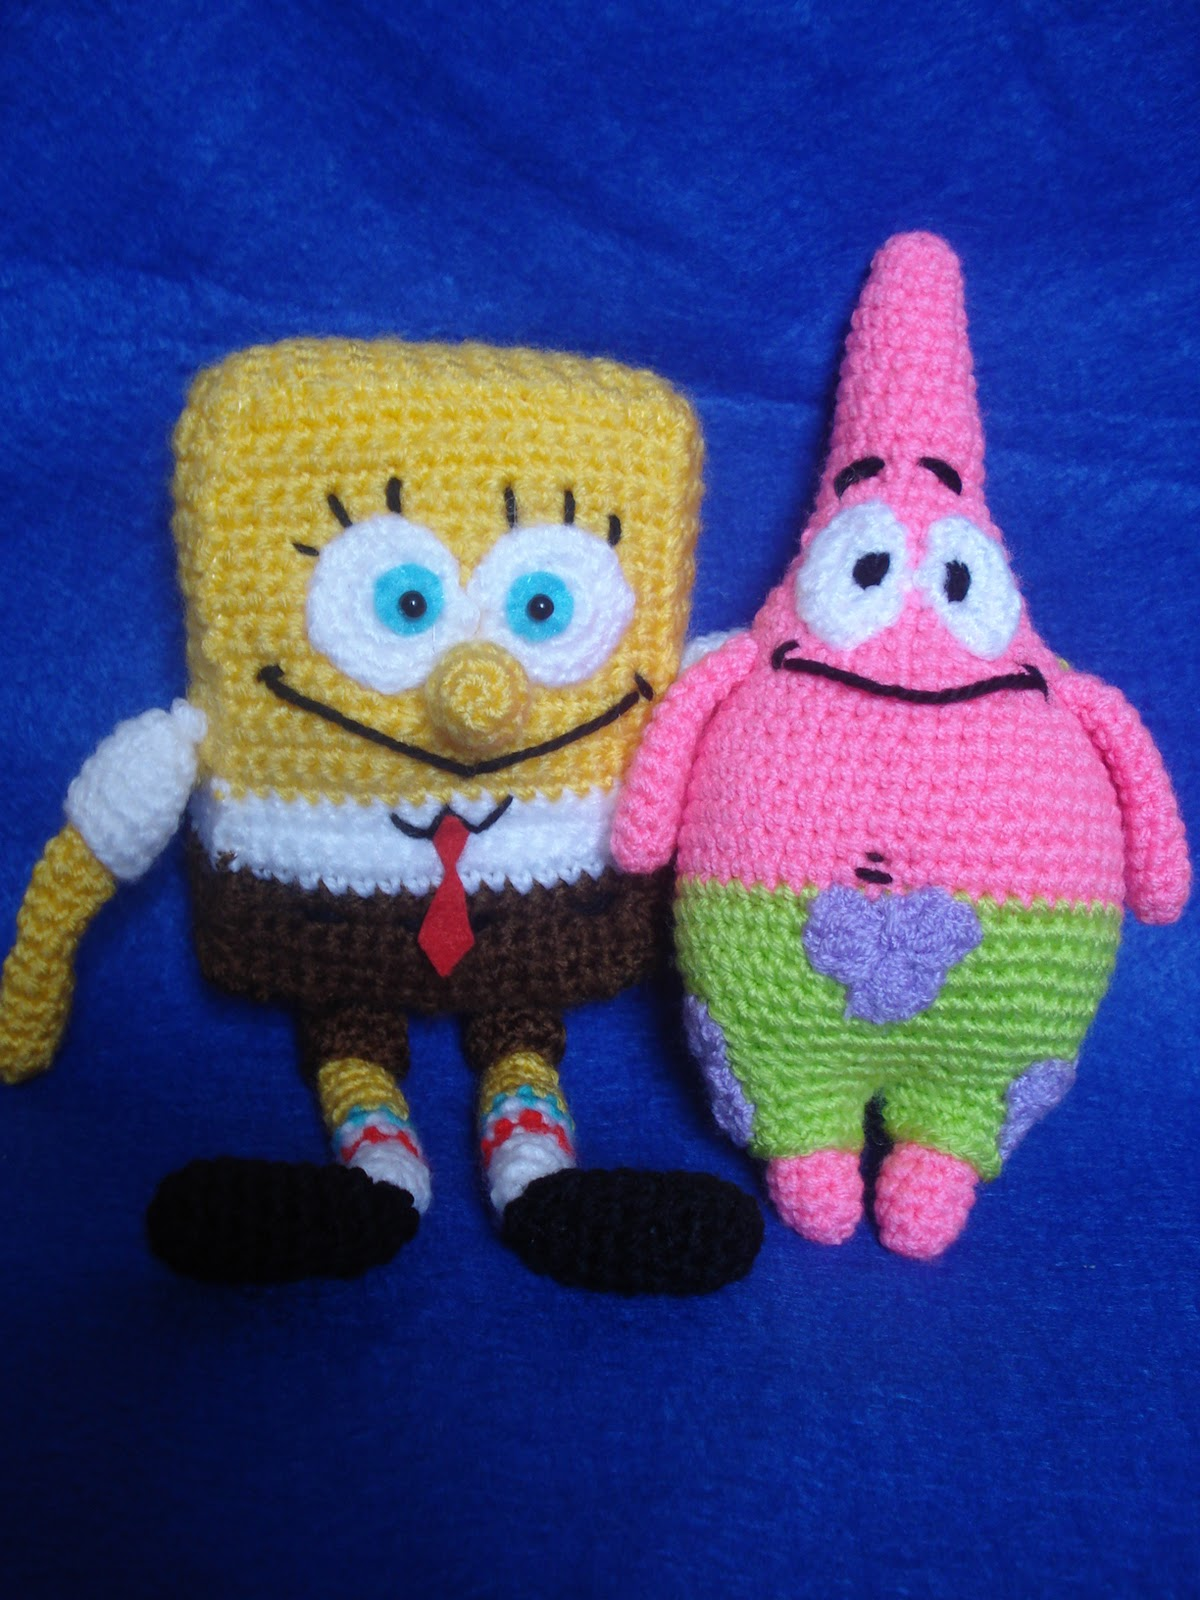 Crochet Pattern For Spongebob Crochet Club